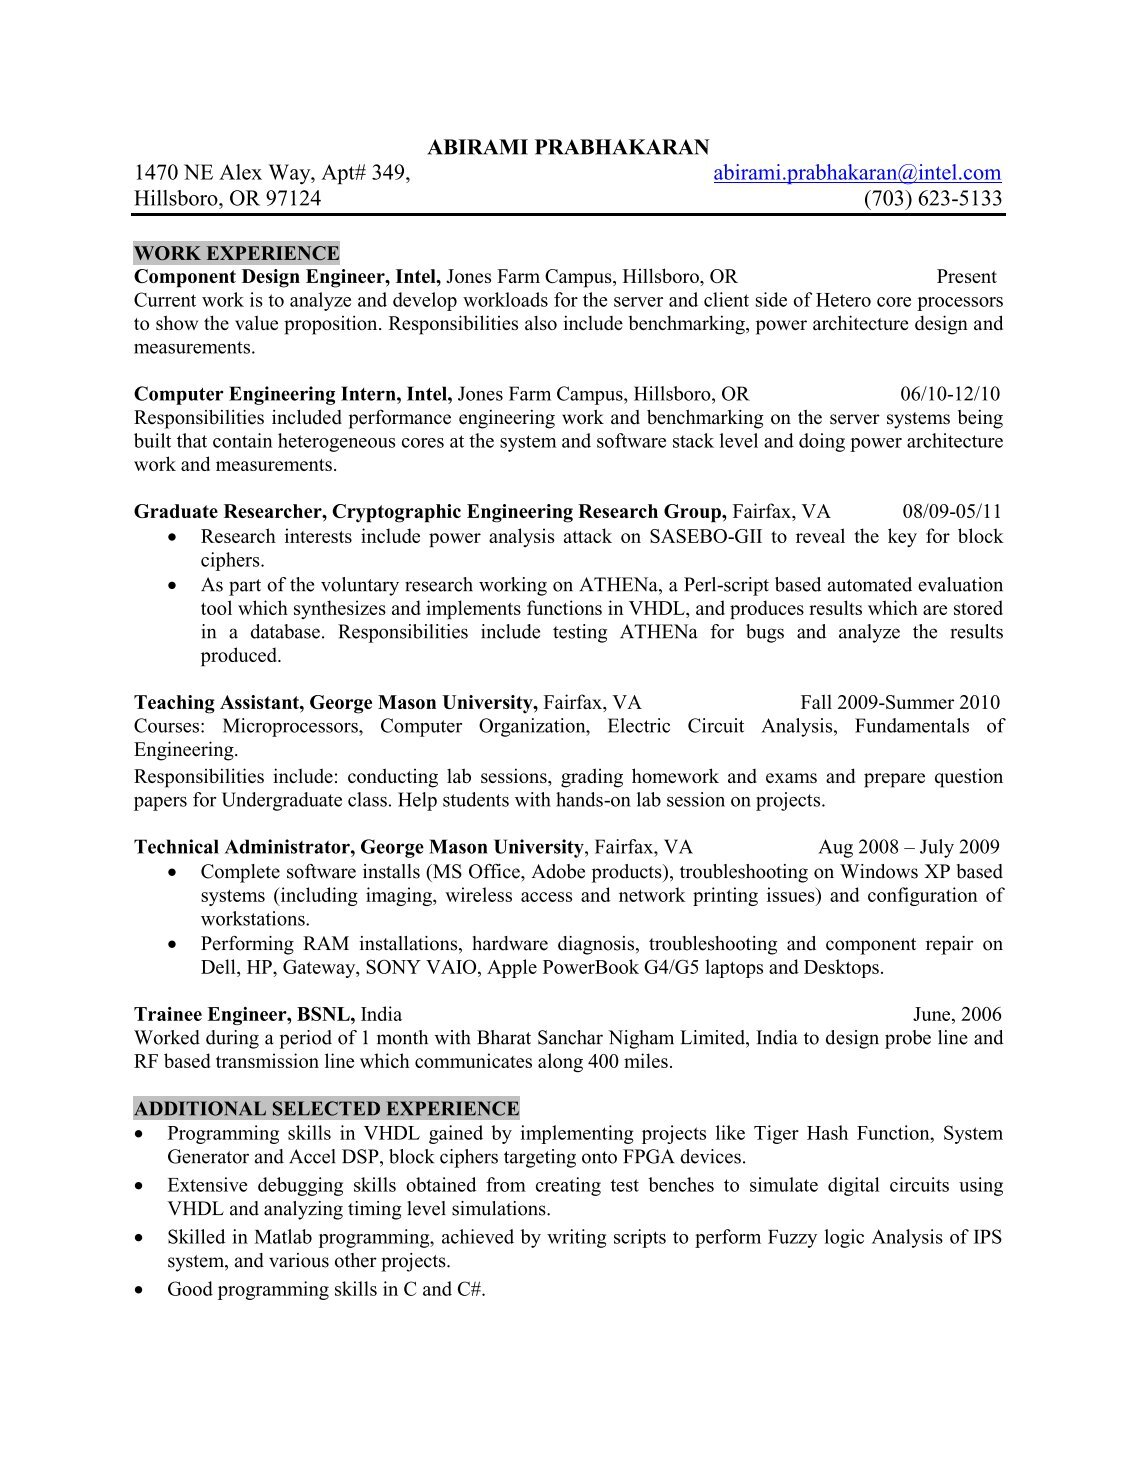 100 Technical Writer Resume India Resume Samples The